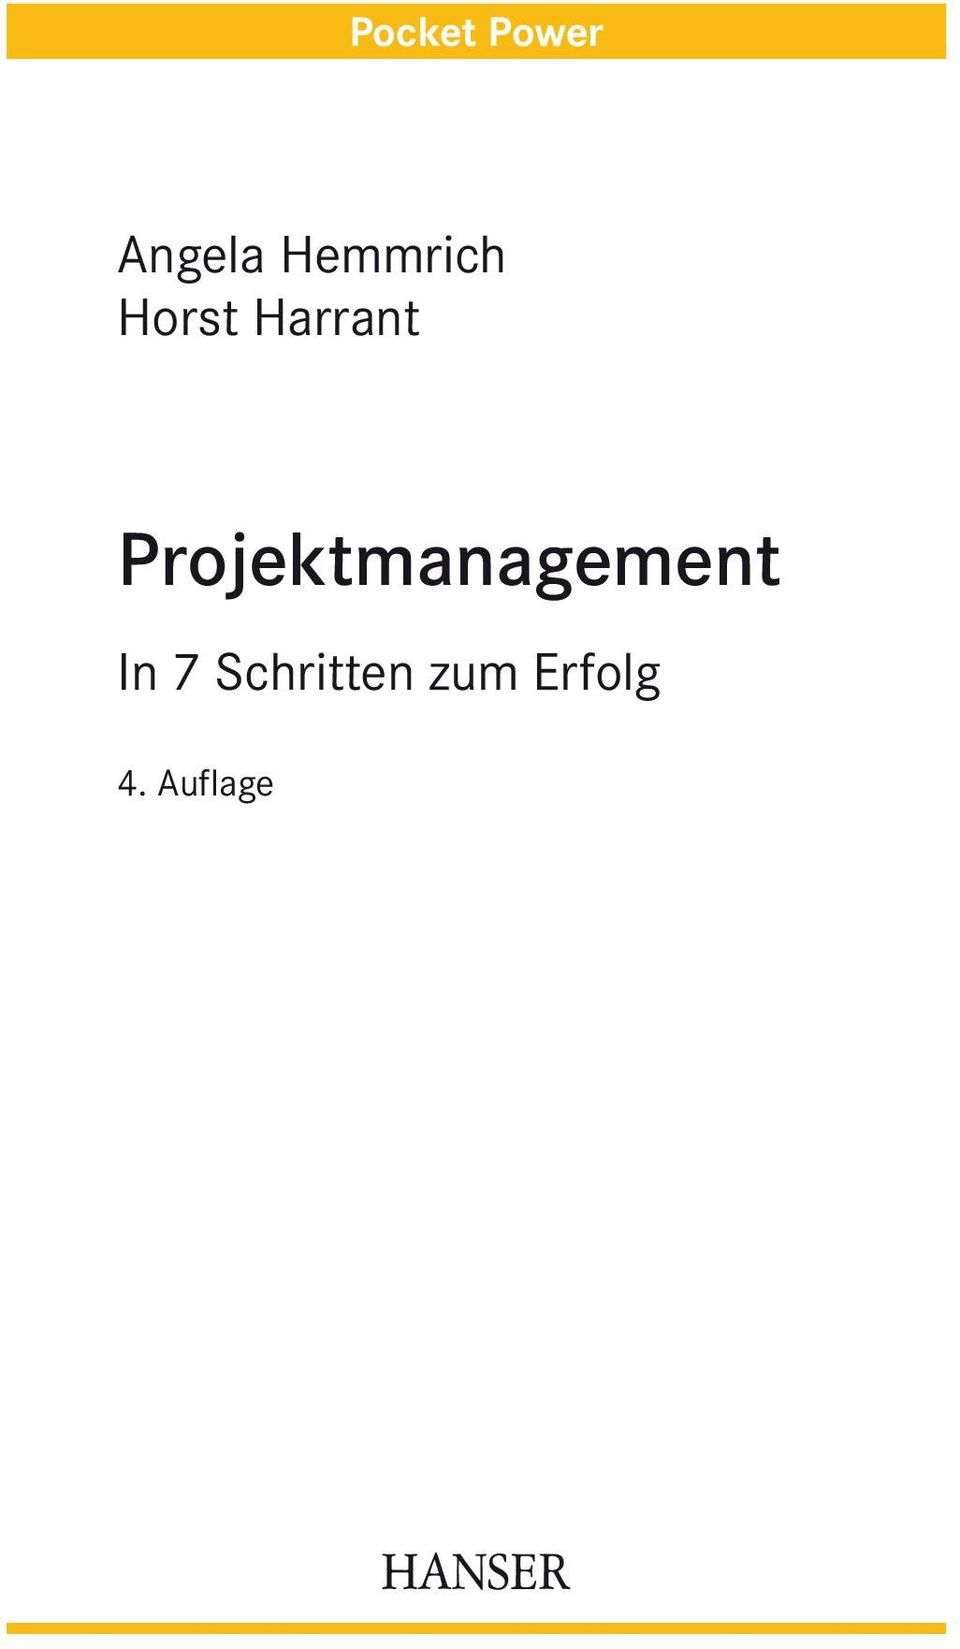 Projektmanagement In 7